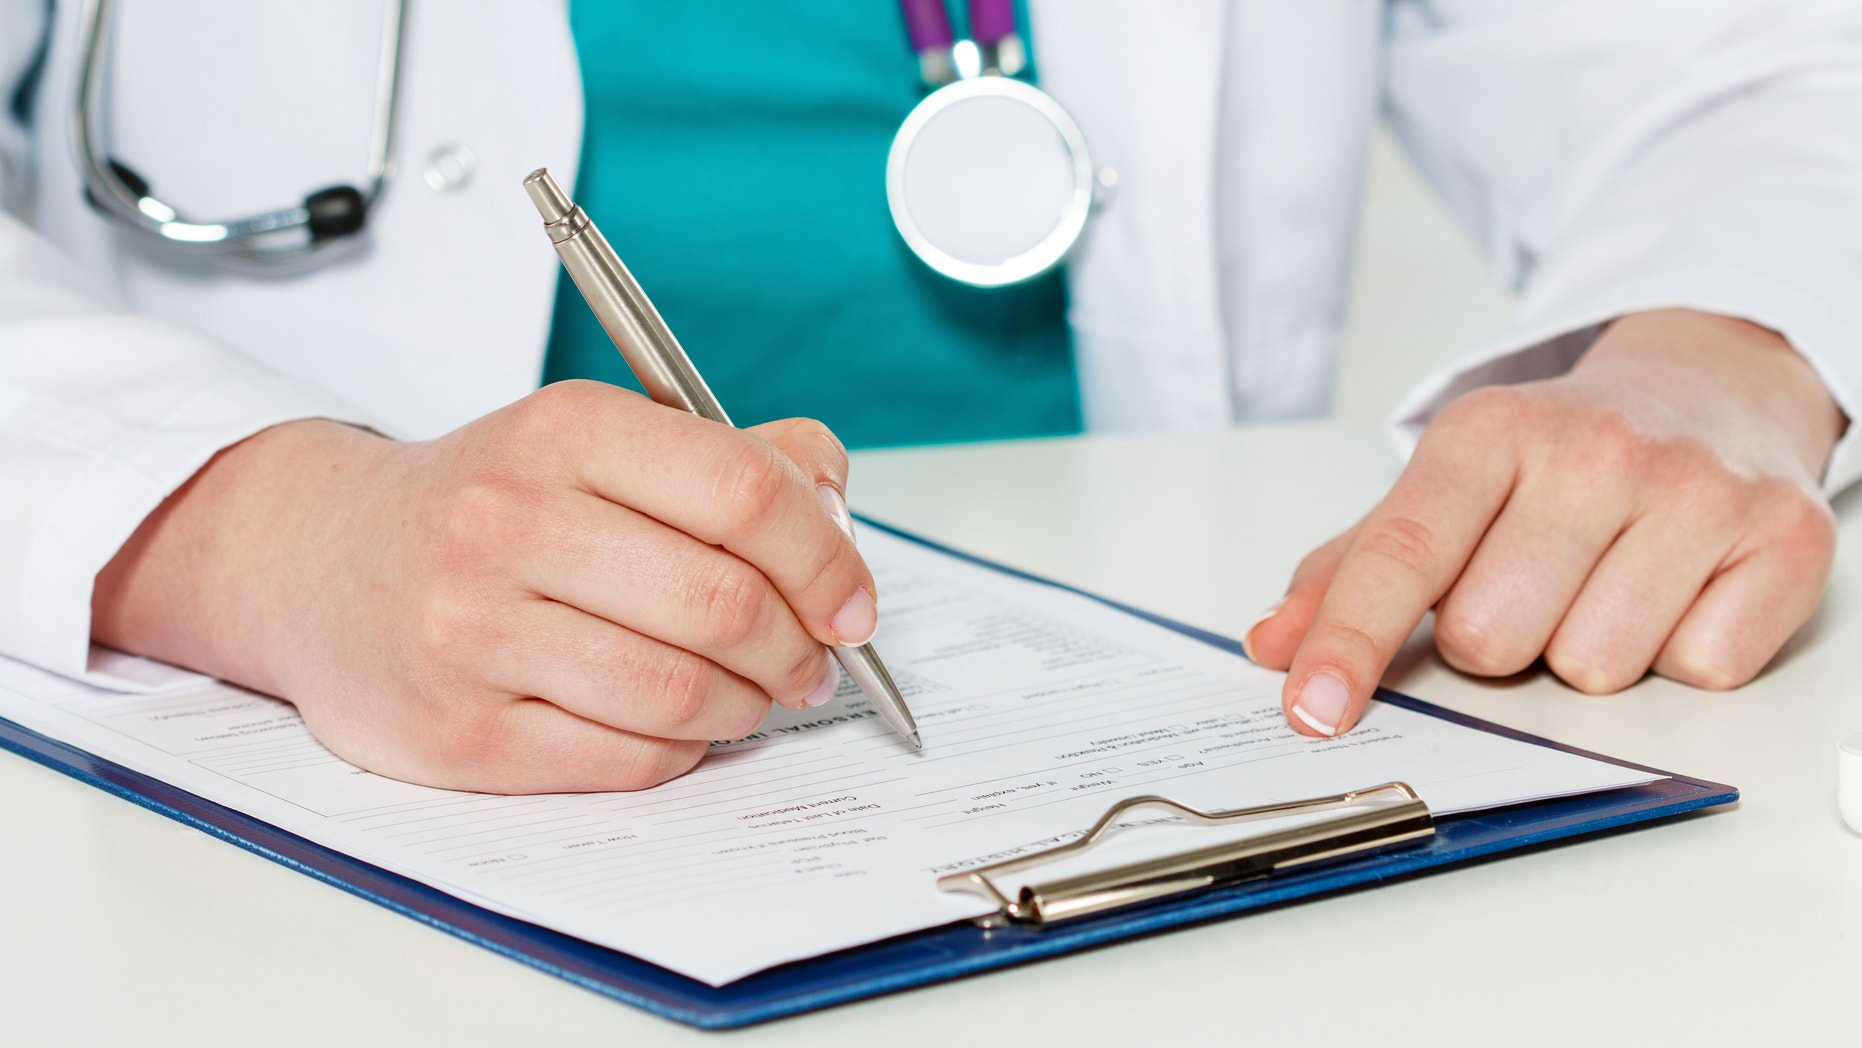 Female medicine doctors hands filling patient medical form. Physician working with paper in hospital office room. Therapeutist sitting at working table making some paperwork. Hands holding silver pen